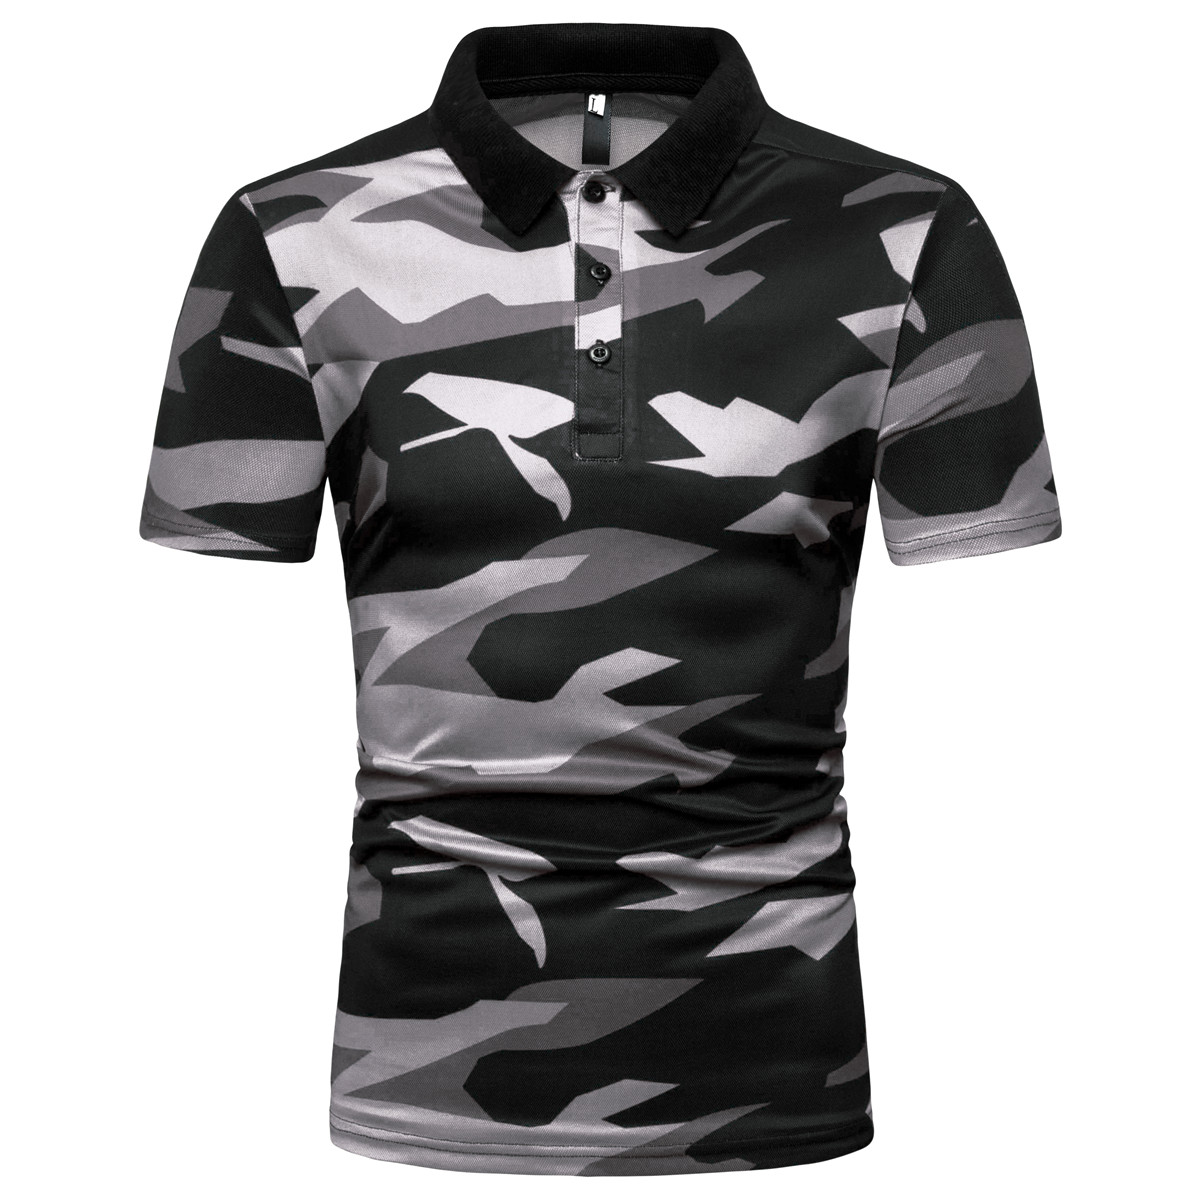 Miicoopie Mens Short Sleeve   Polo   Shirts Fashion Camouflage Print Casual Brand Mens   Polo   Shirts